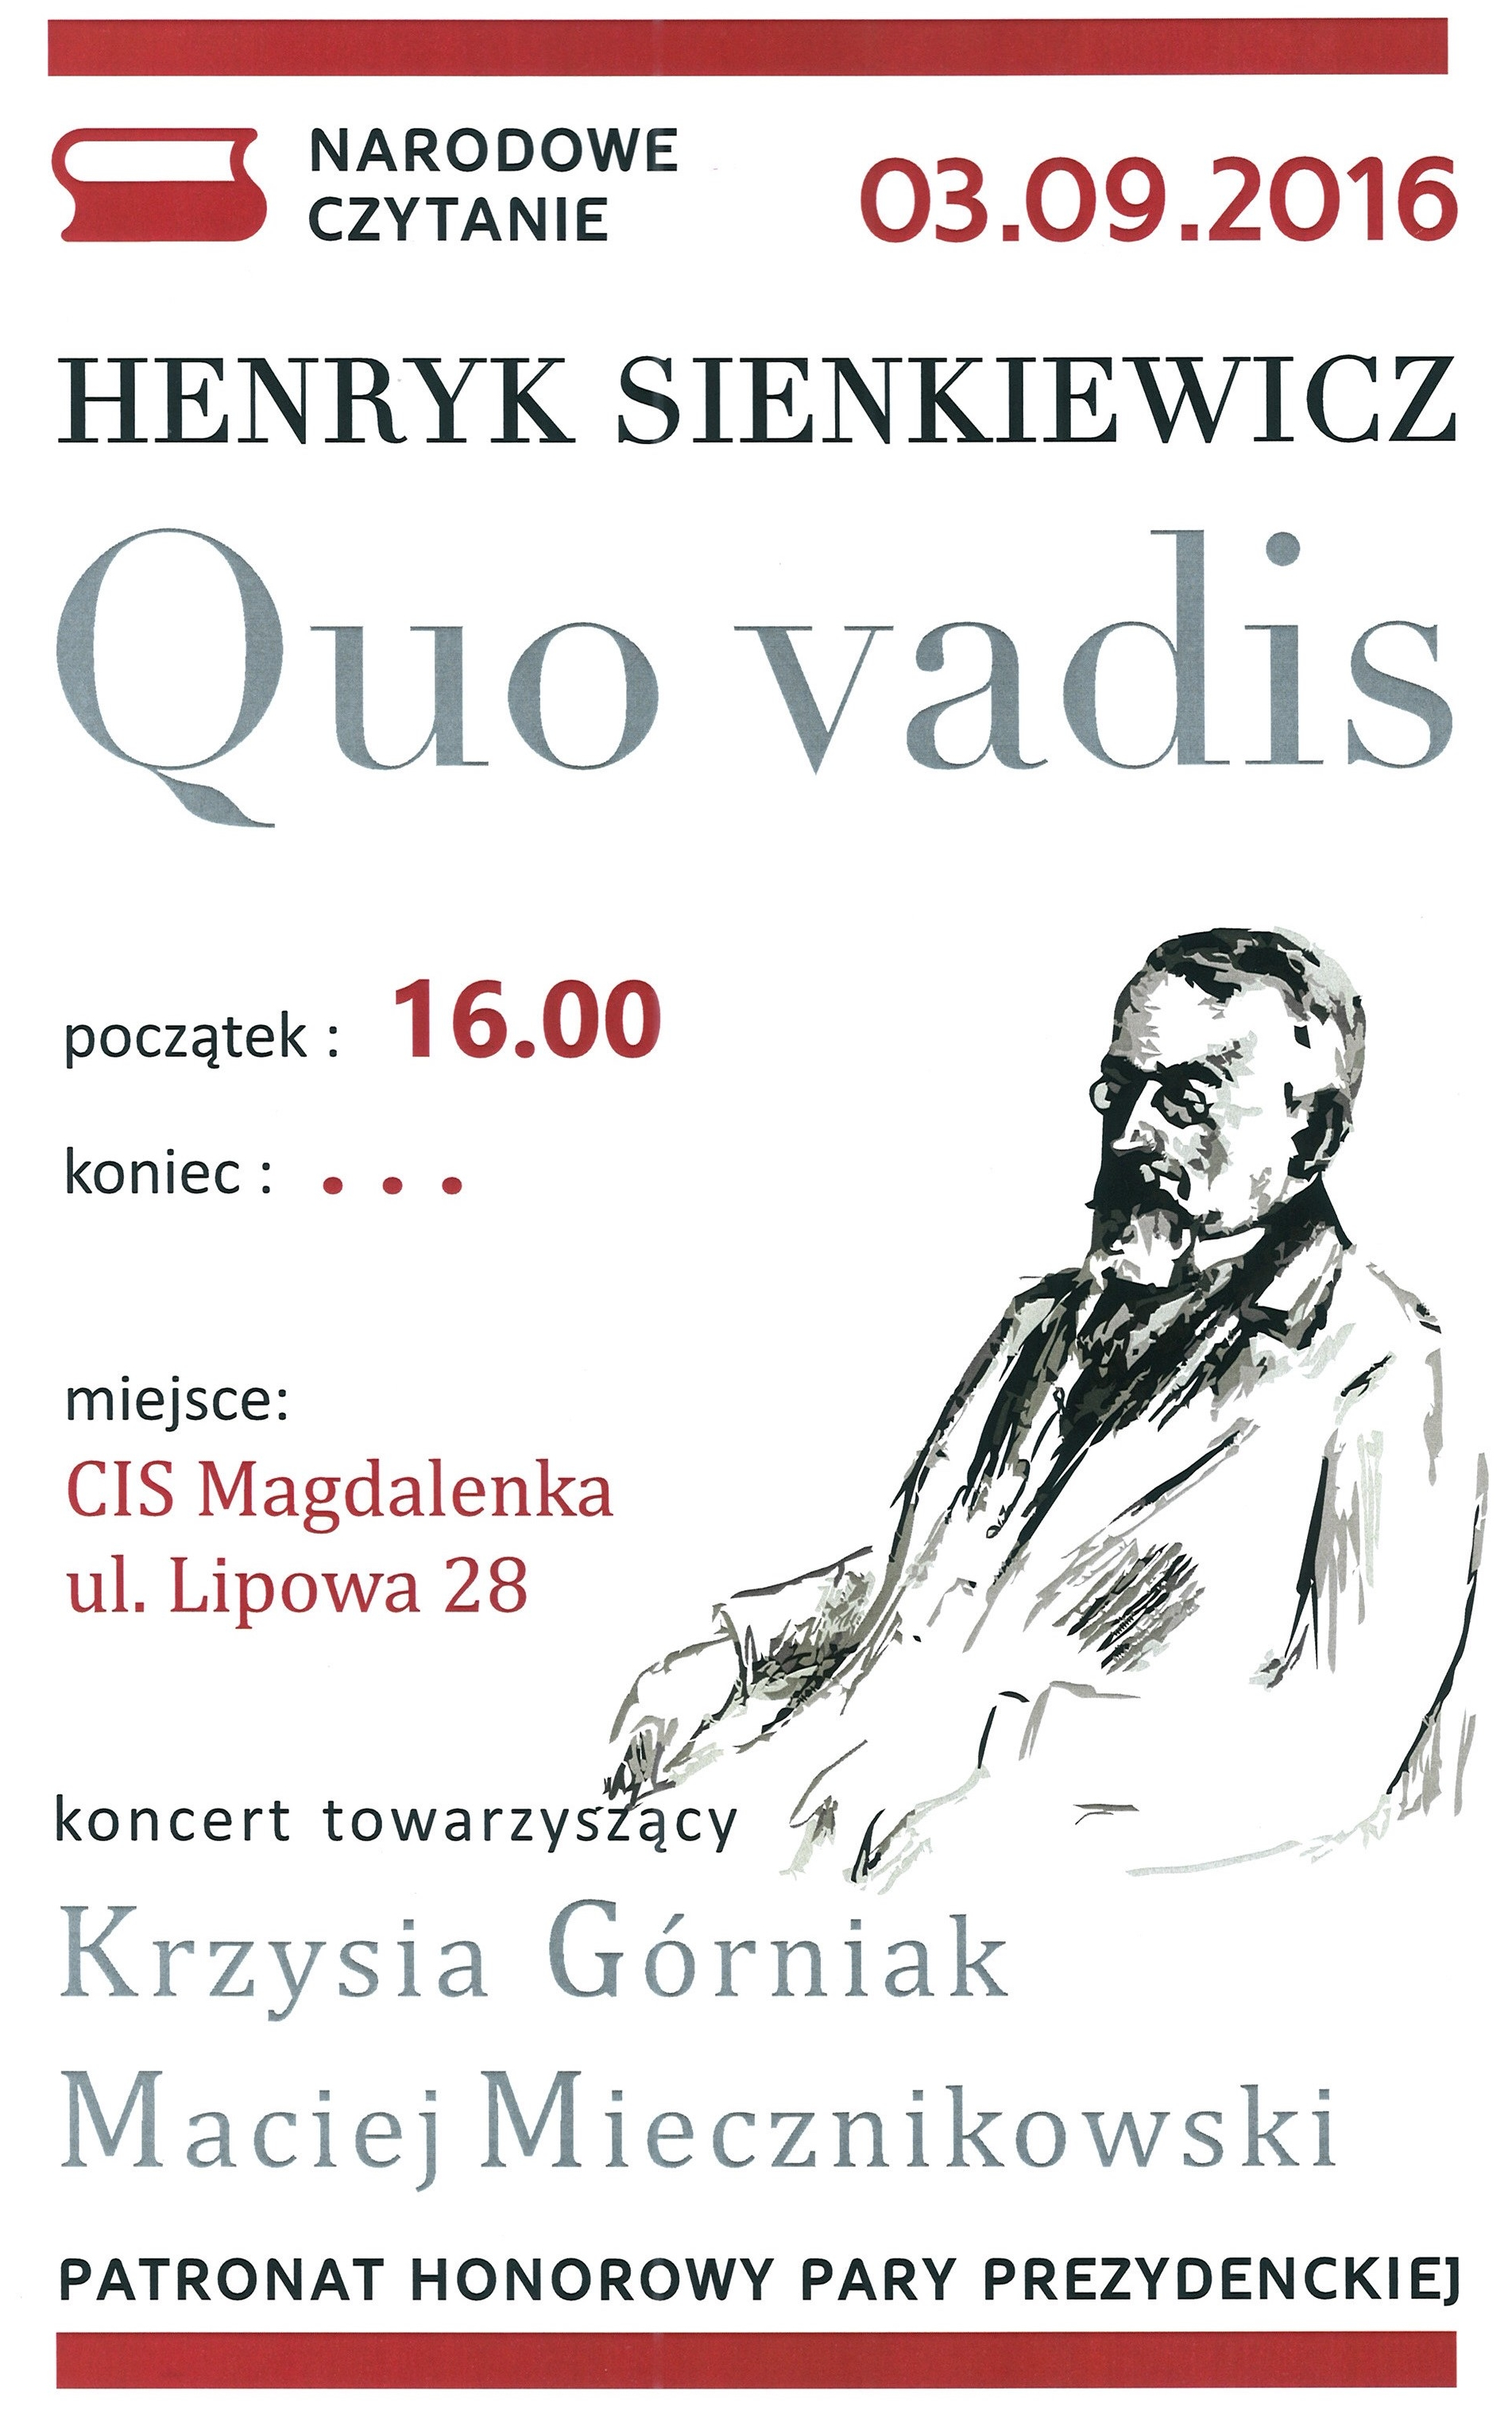 QUO VADIS W MAGDALENCE